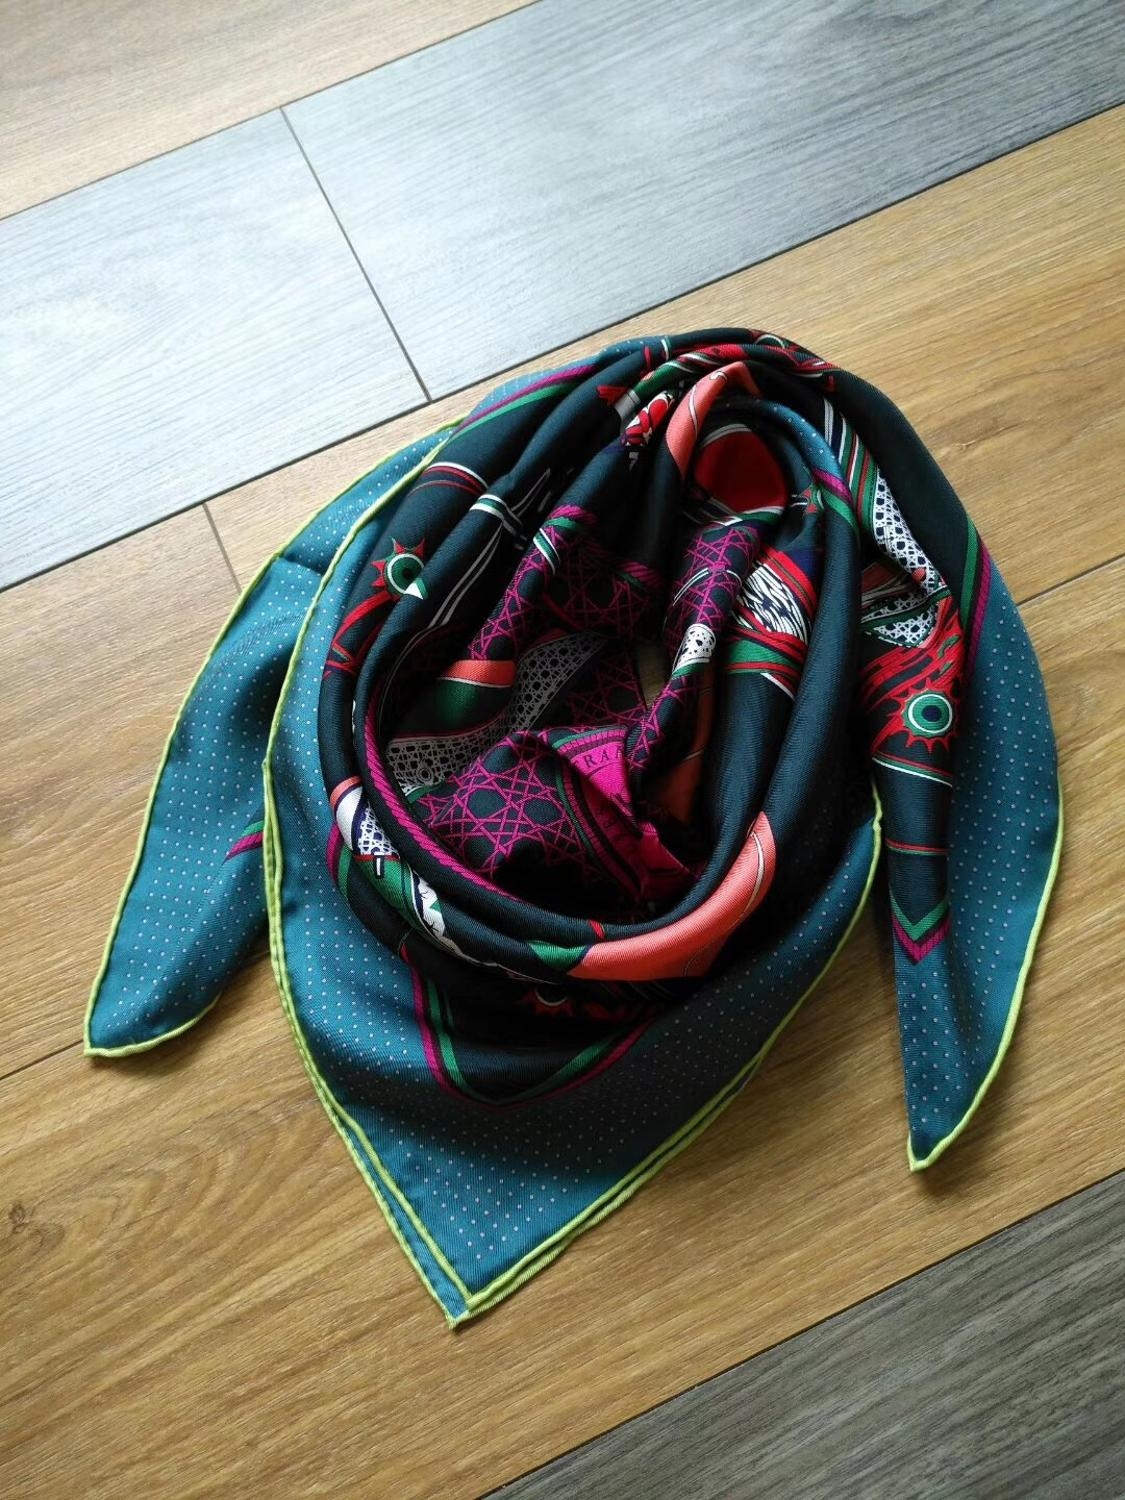 2019 New Arrival Spring Autumn Horse Carriage 100% Pure Silk Scarf Twill Hand Made Roll 90*90 Cm Shawl Wrap For Women Lady